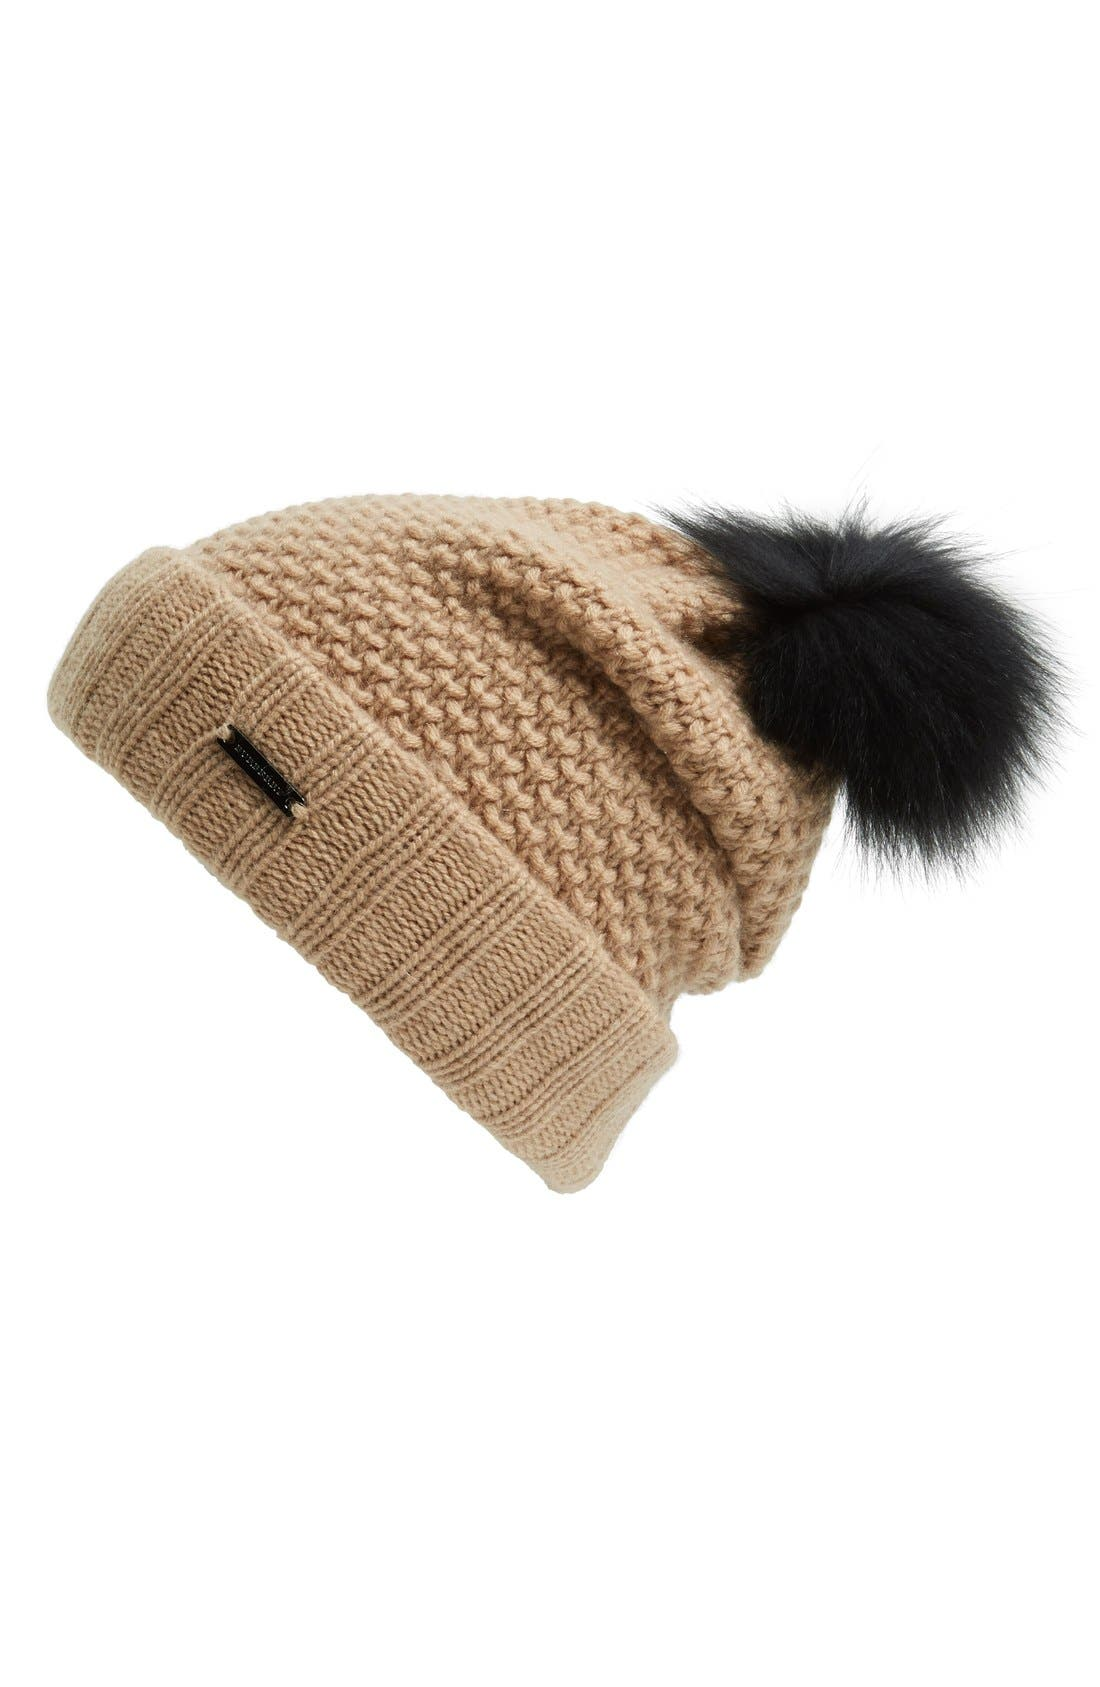 Alternate Image 1 Selected - Burberry Knit Wool & Cashmere Beanie with Genuine Fox Fur Pompom